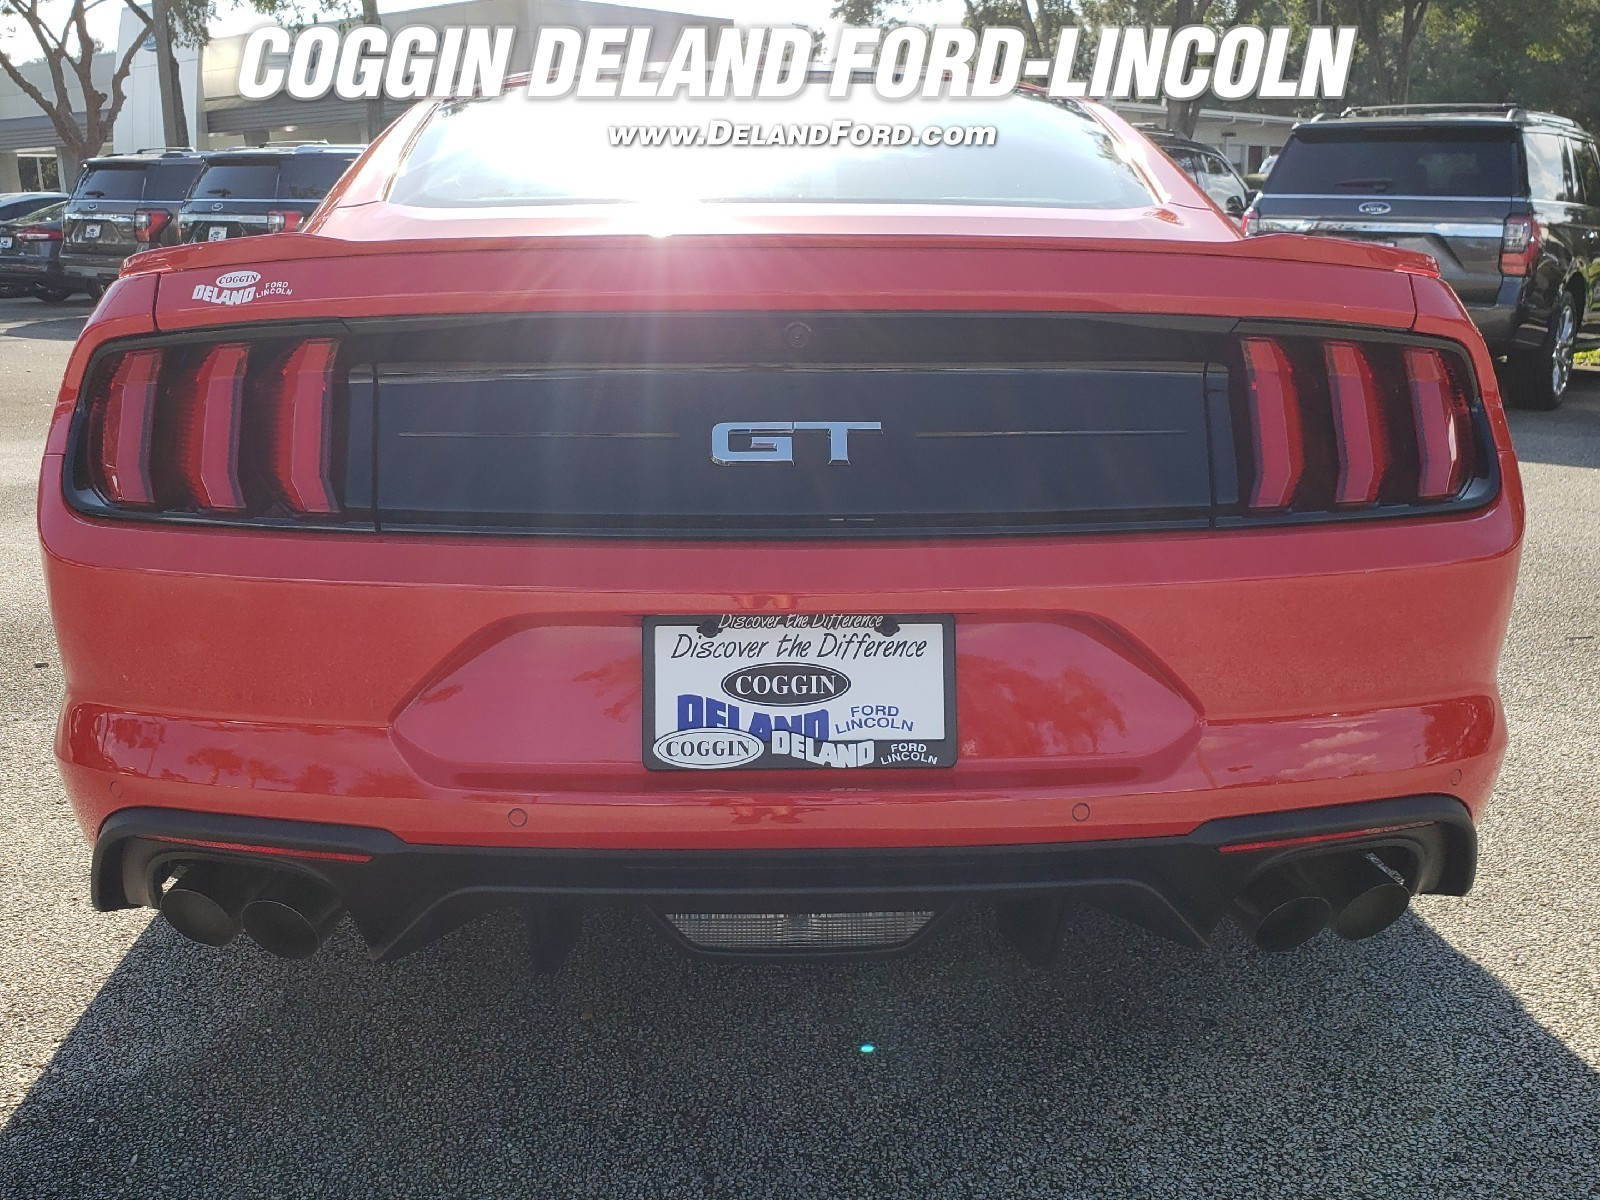 Used Cars Under $2000 Fresh New 2019 ford Mustang for Sale at Coggin Deland ford